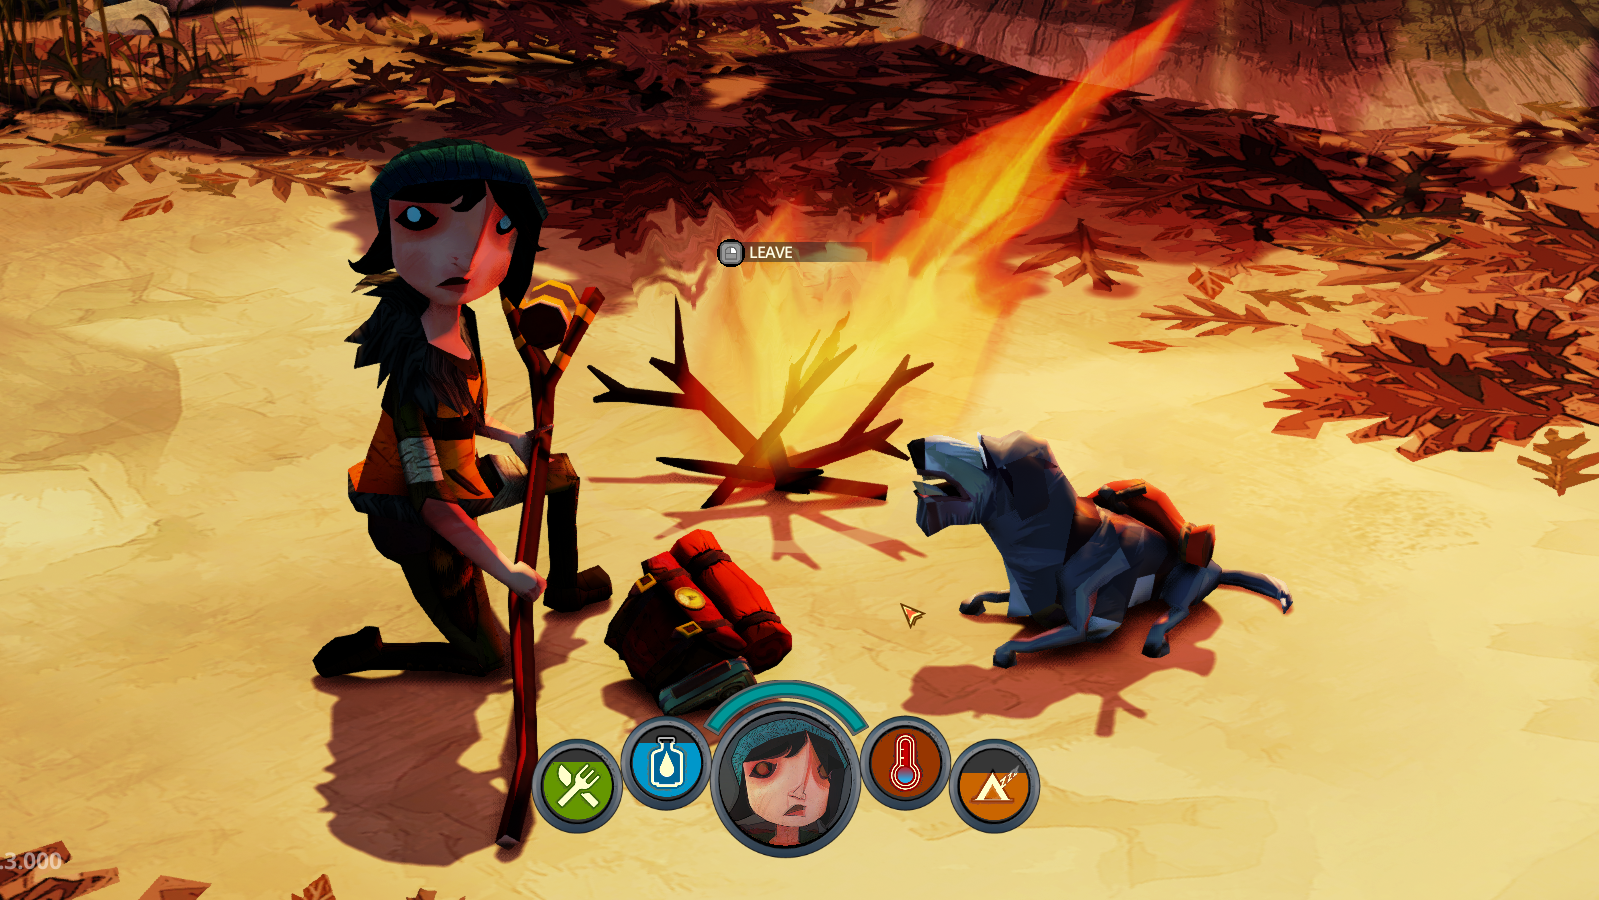 Dying often, and of everything, in The Flame in the Flood